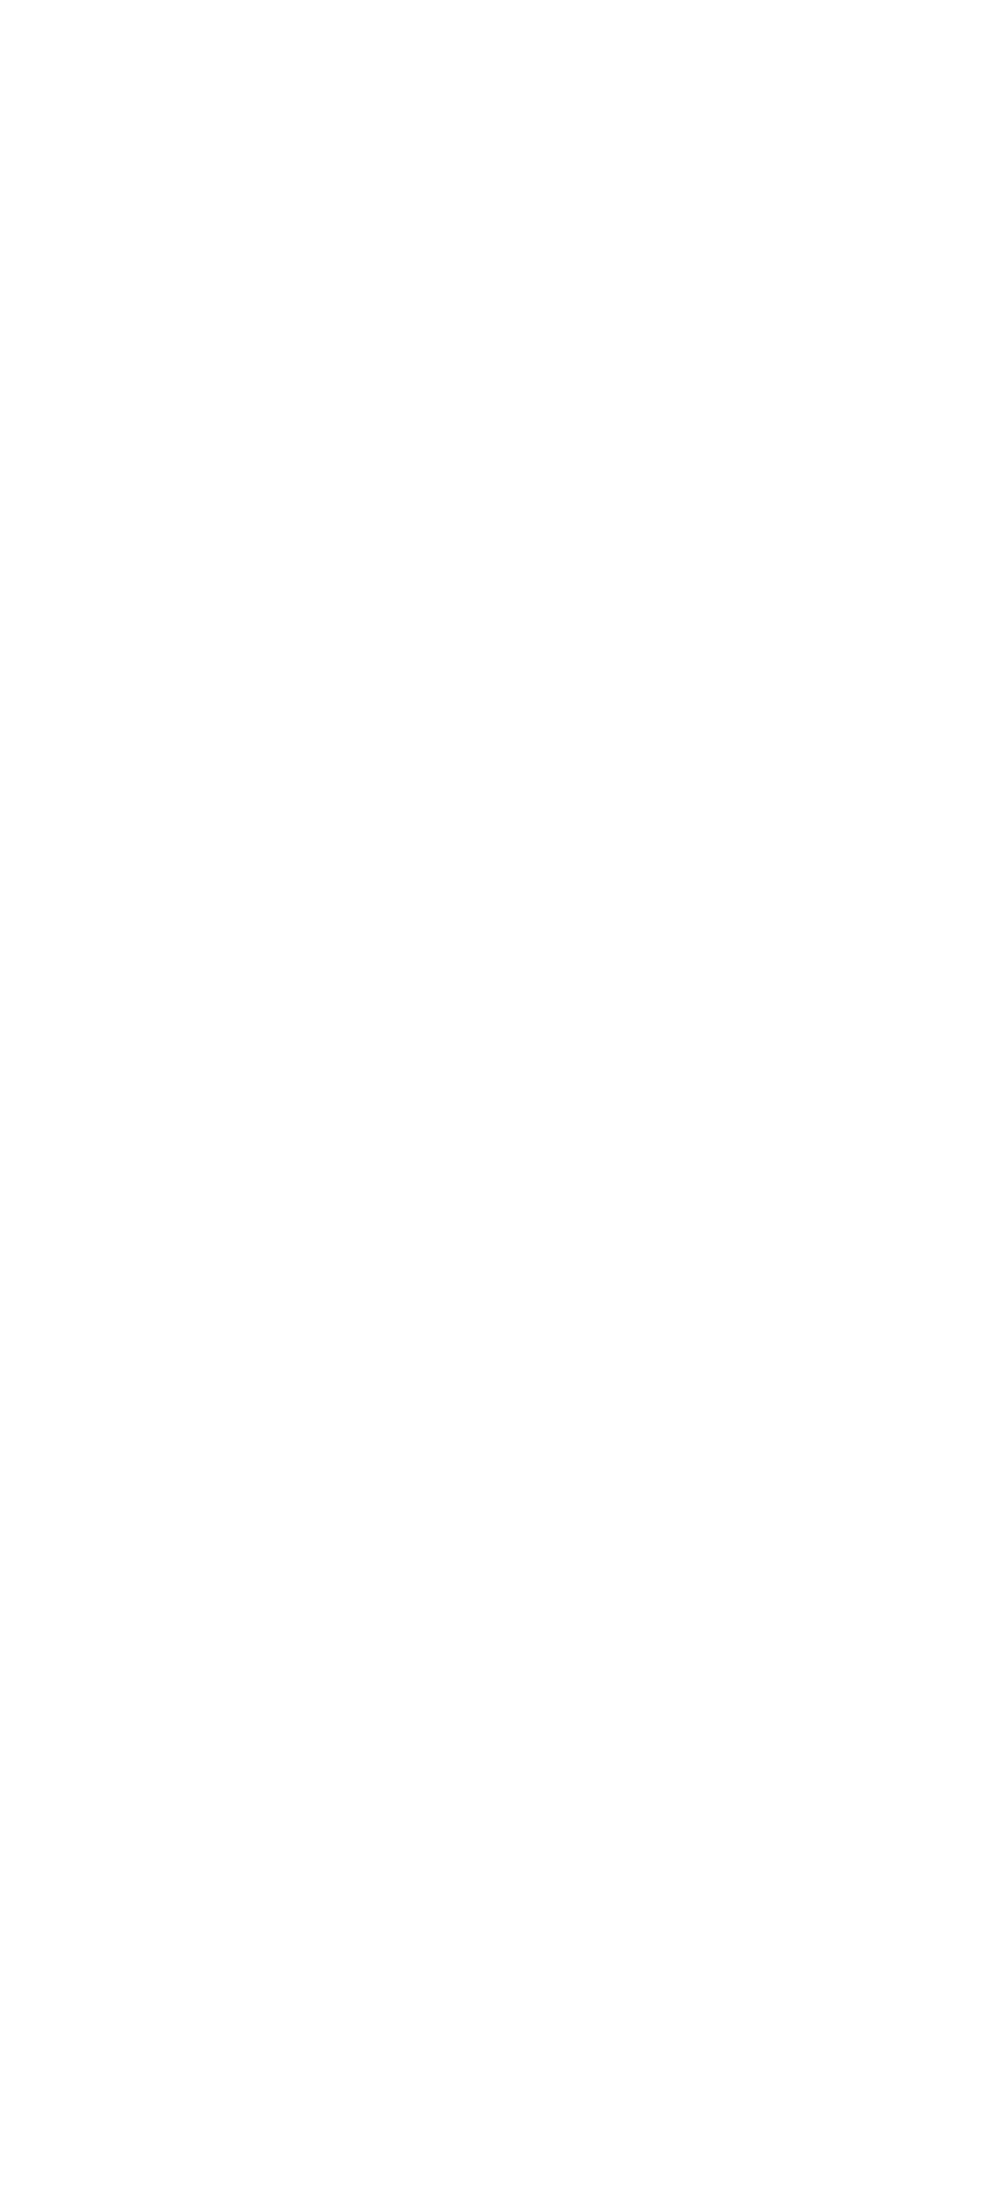 SKINFINITY SERVICES MENU 01 SS.png